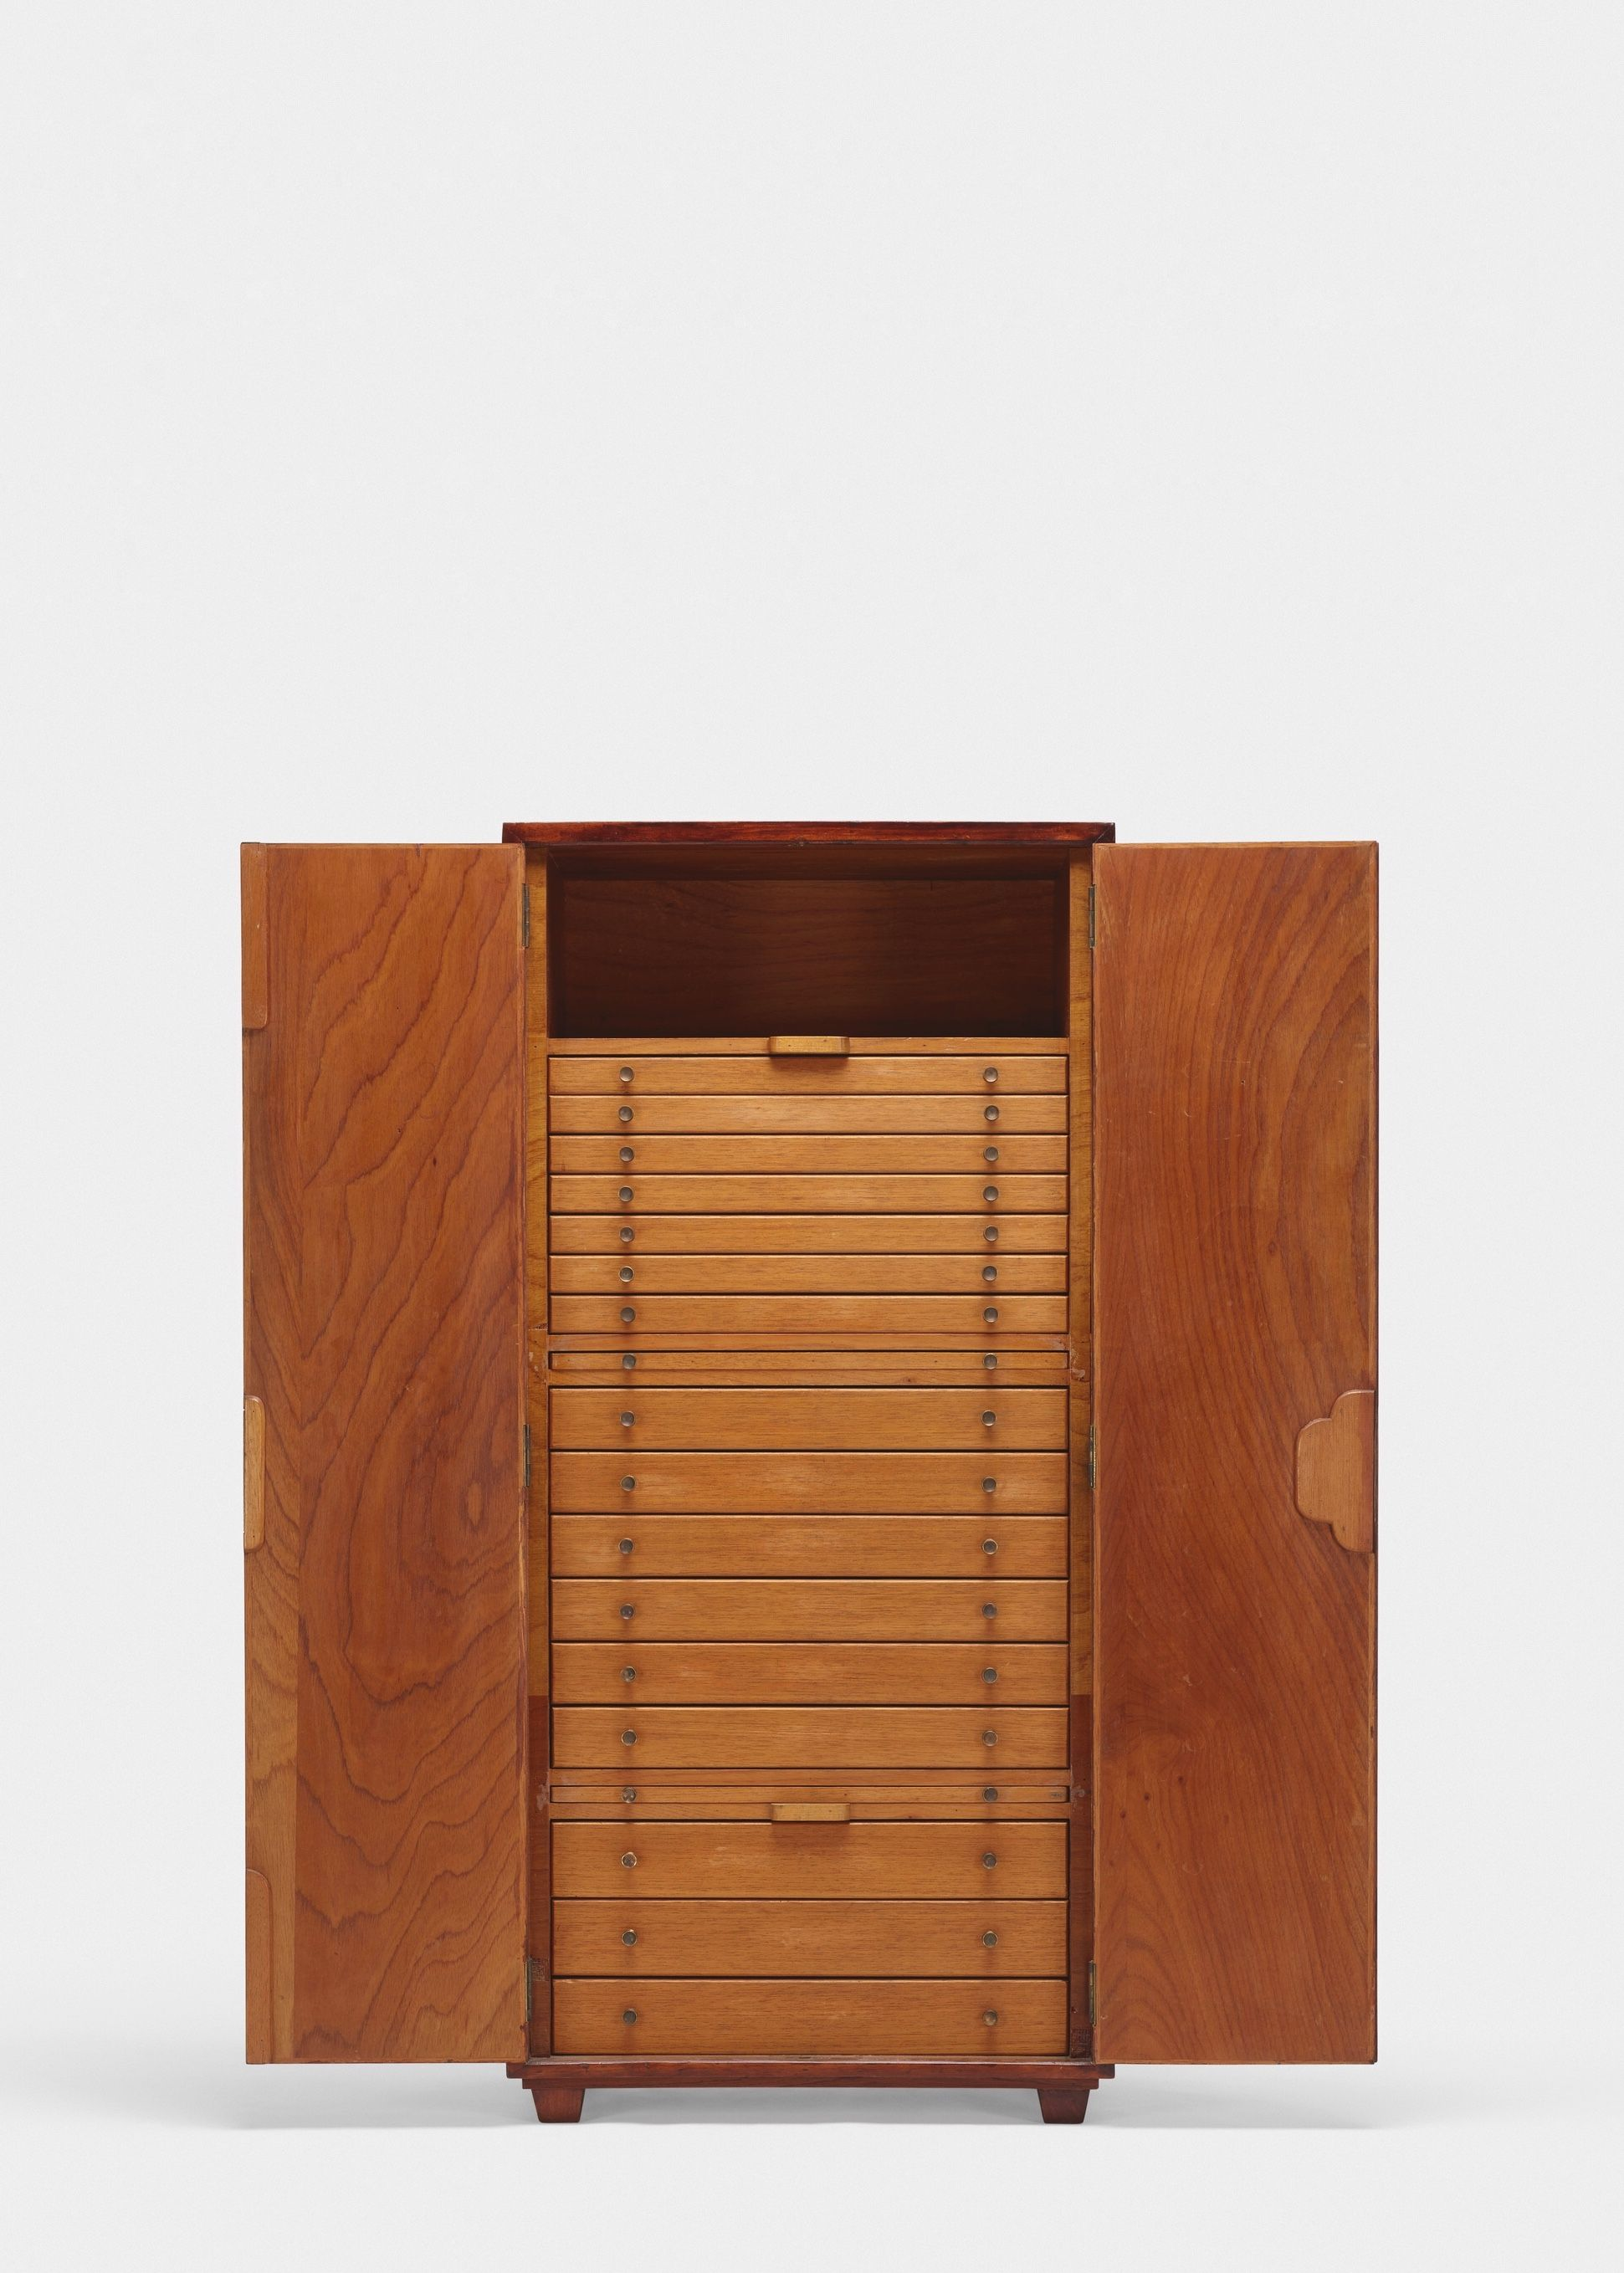 sergio rodrigues, custom cabinet from bloch editores